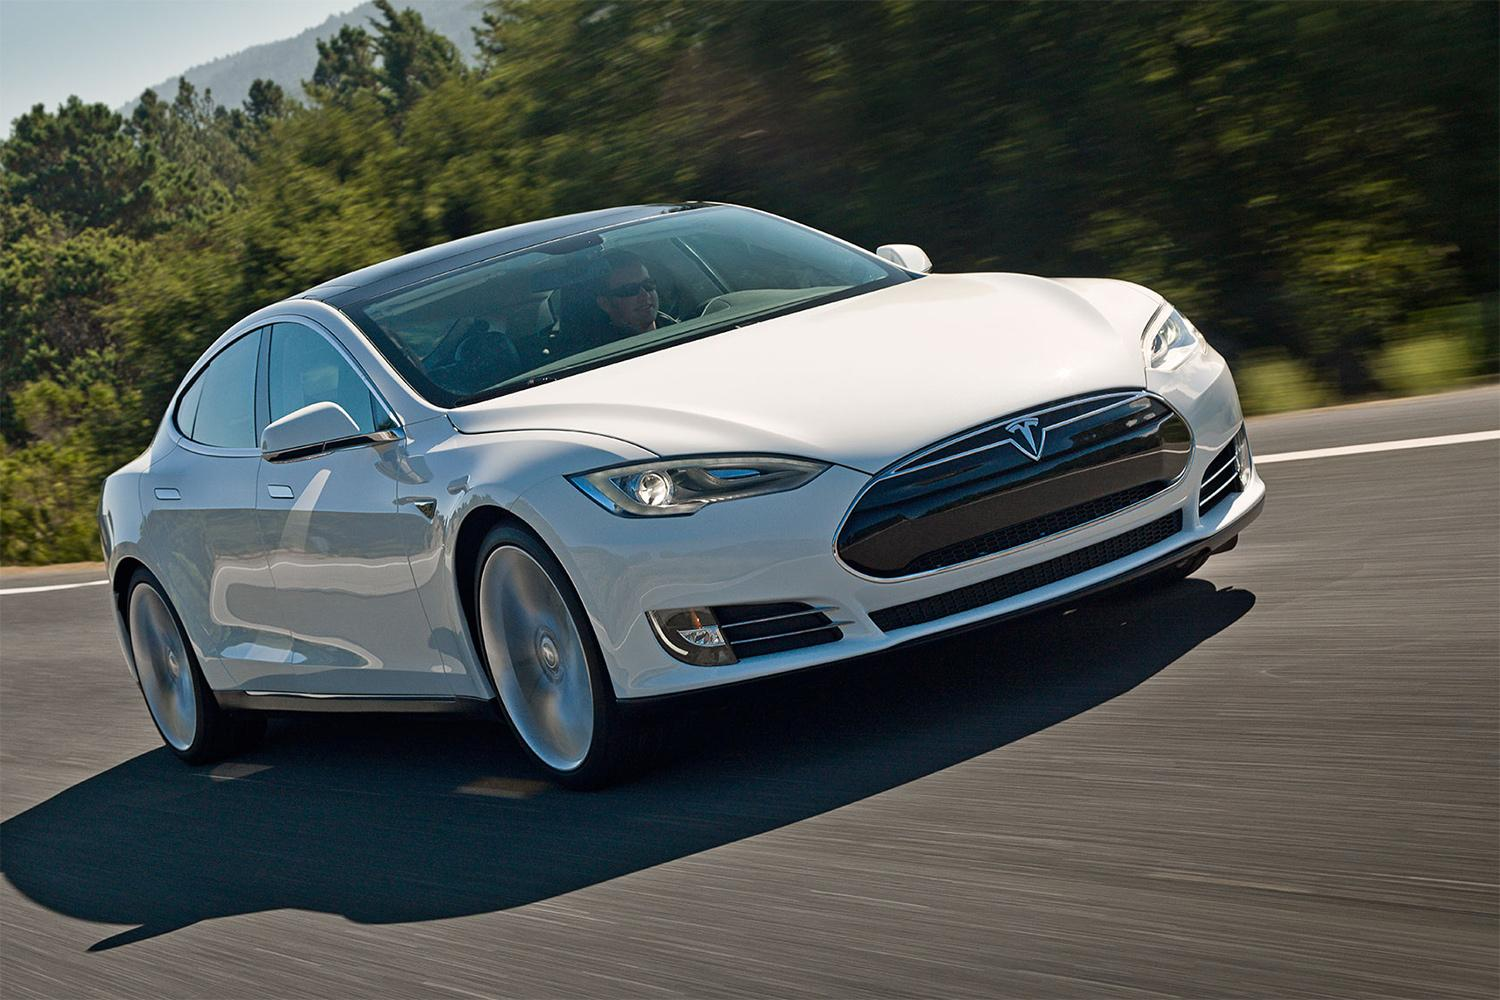 Cars Now: The Tesla Model S Is Now The Fastest Car In The World